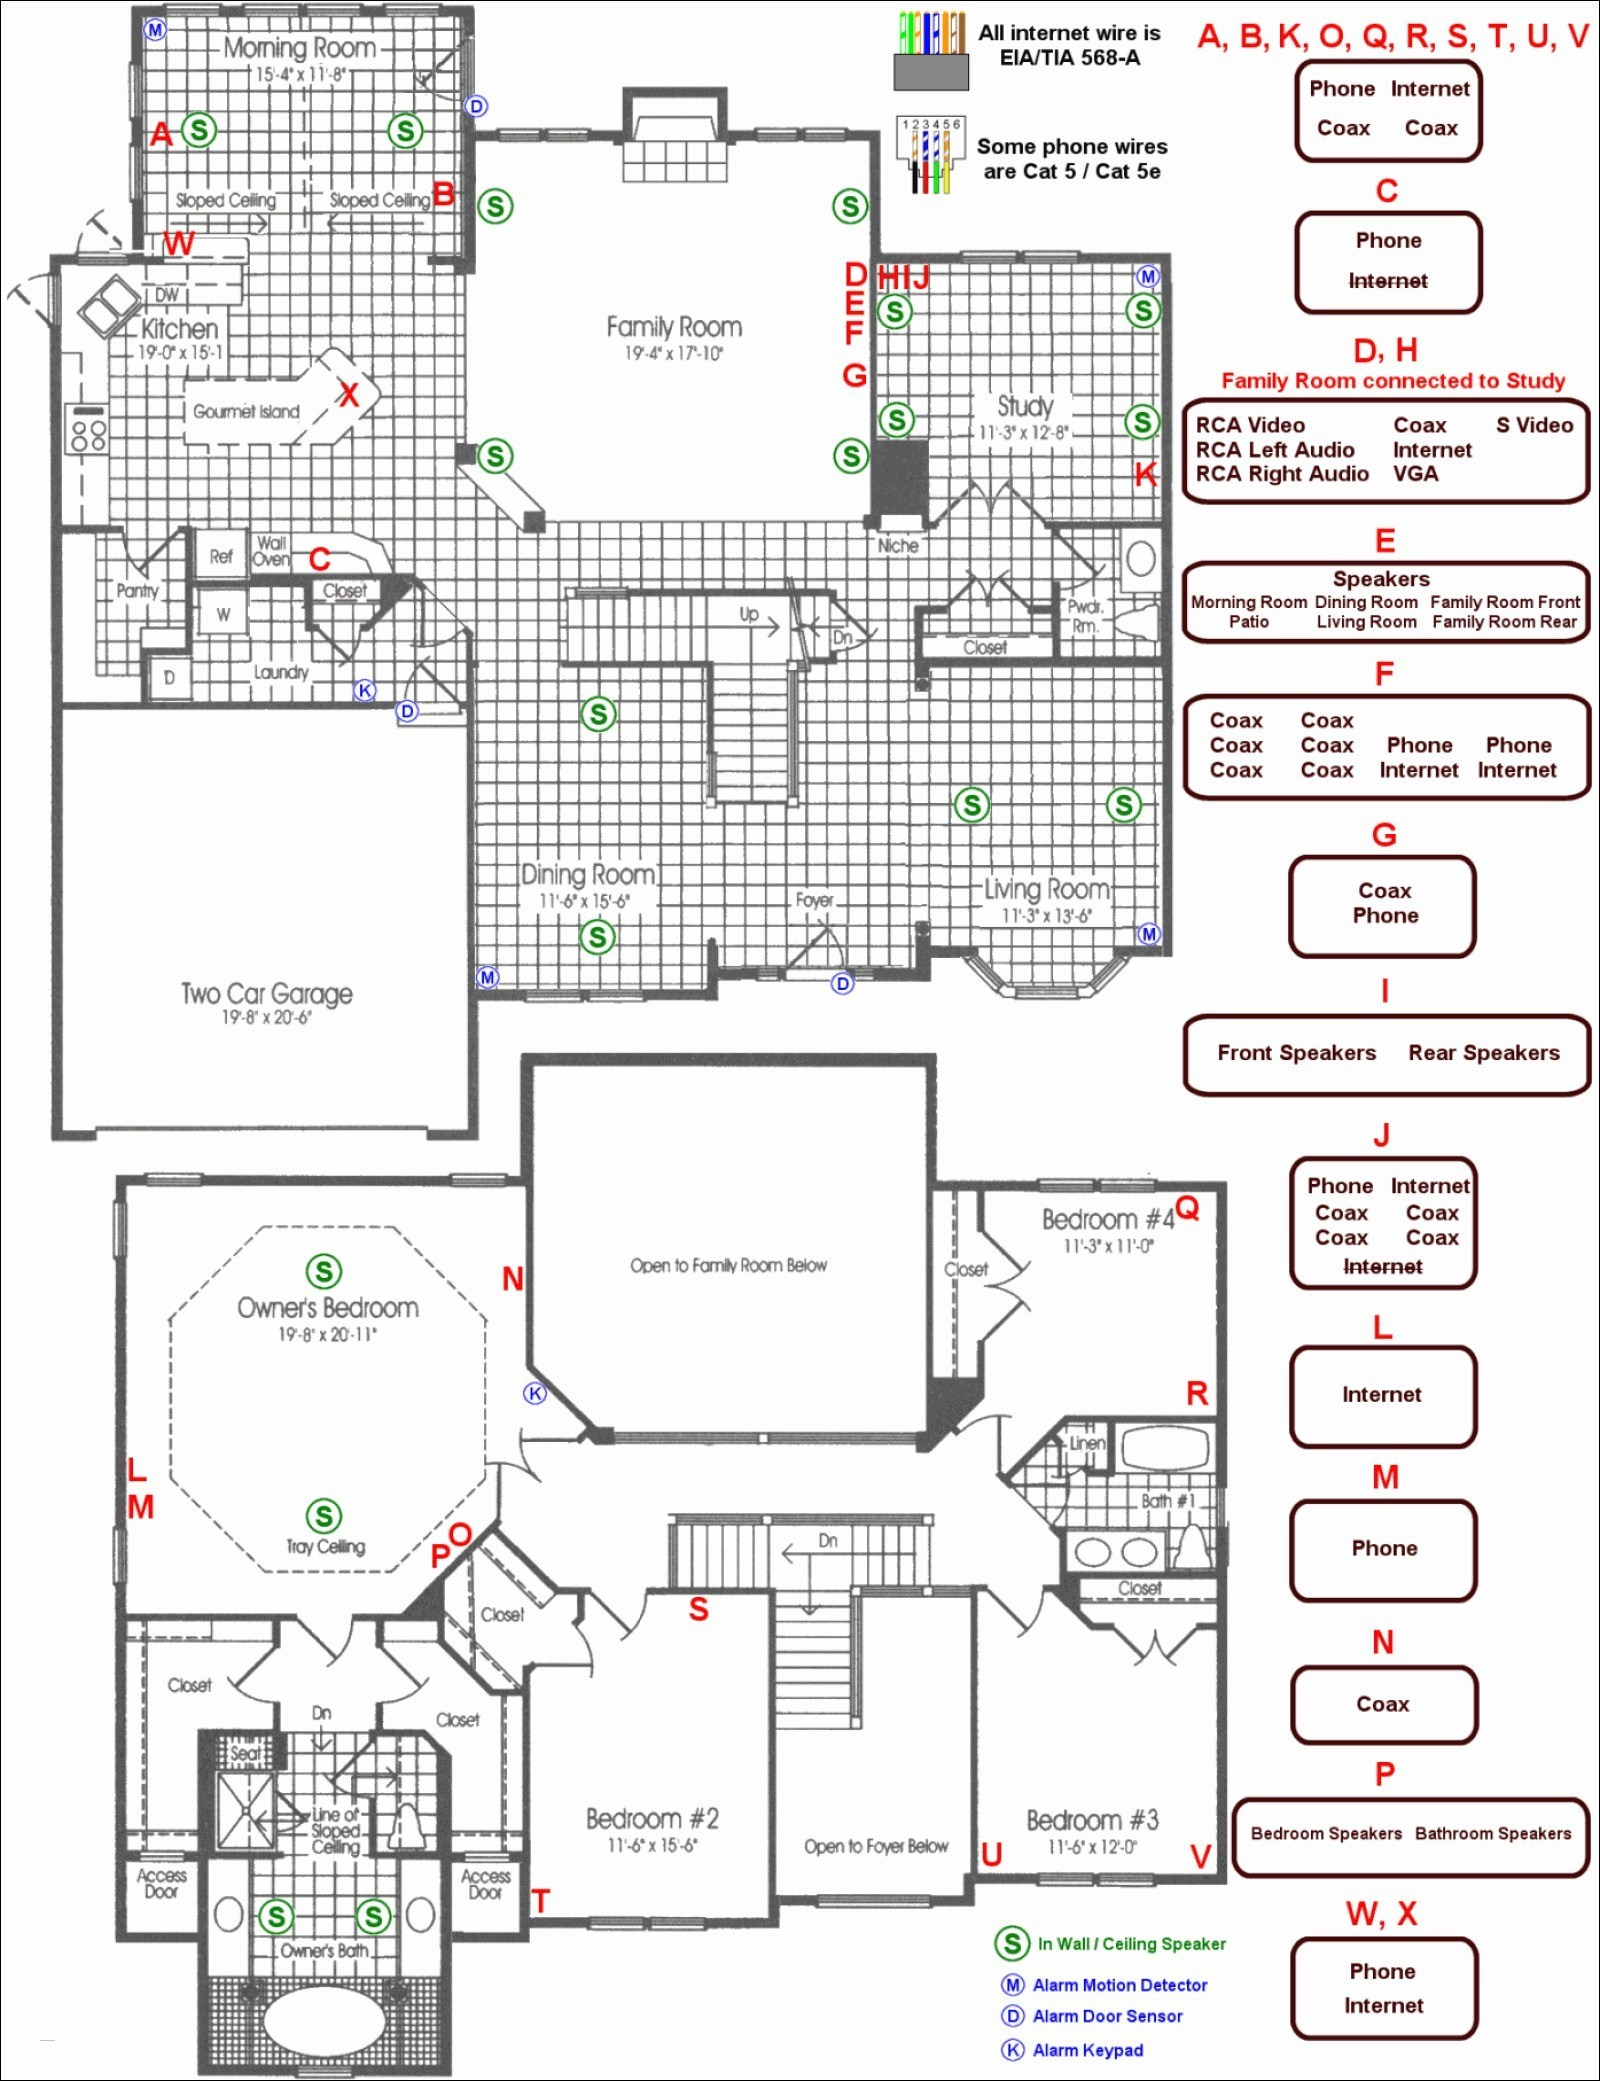 home speaker wiring diagram Download-Wiring Diagram Detail Name home speaker 18-o